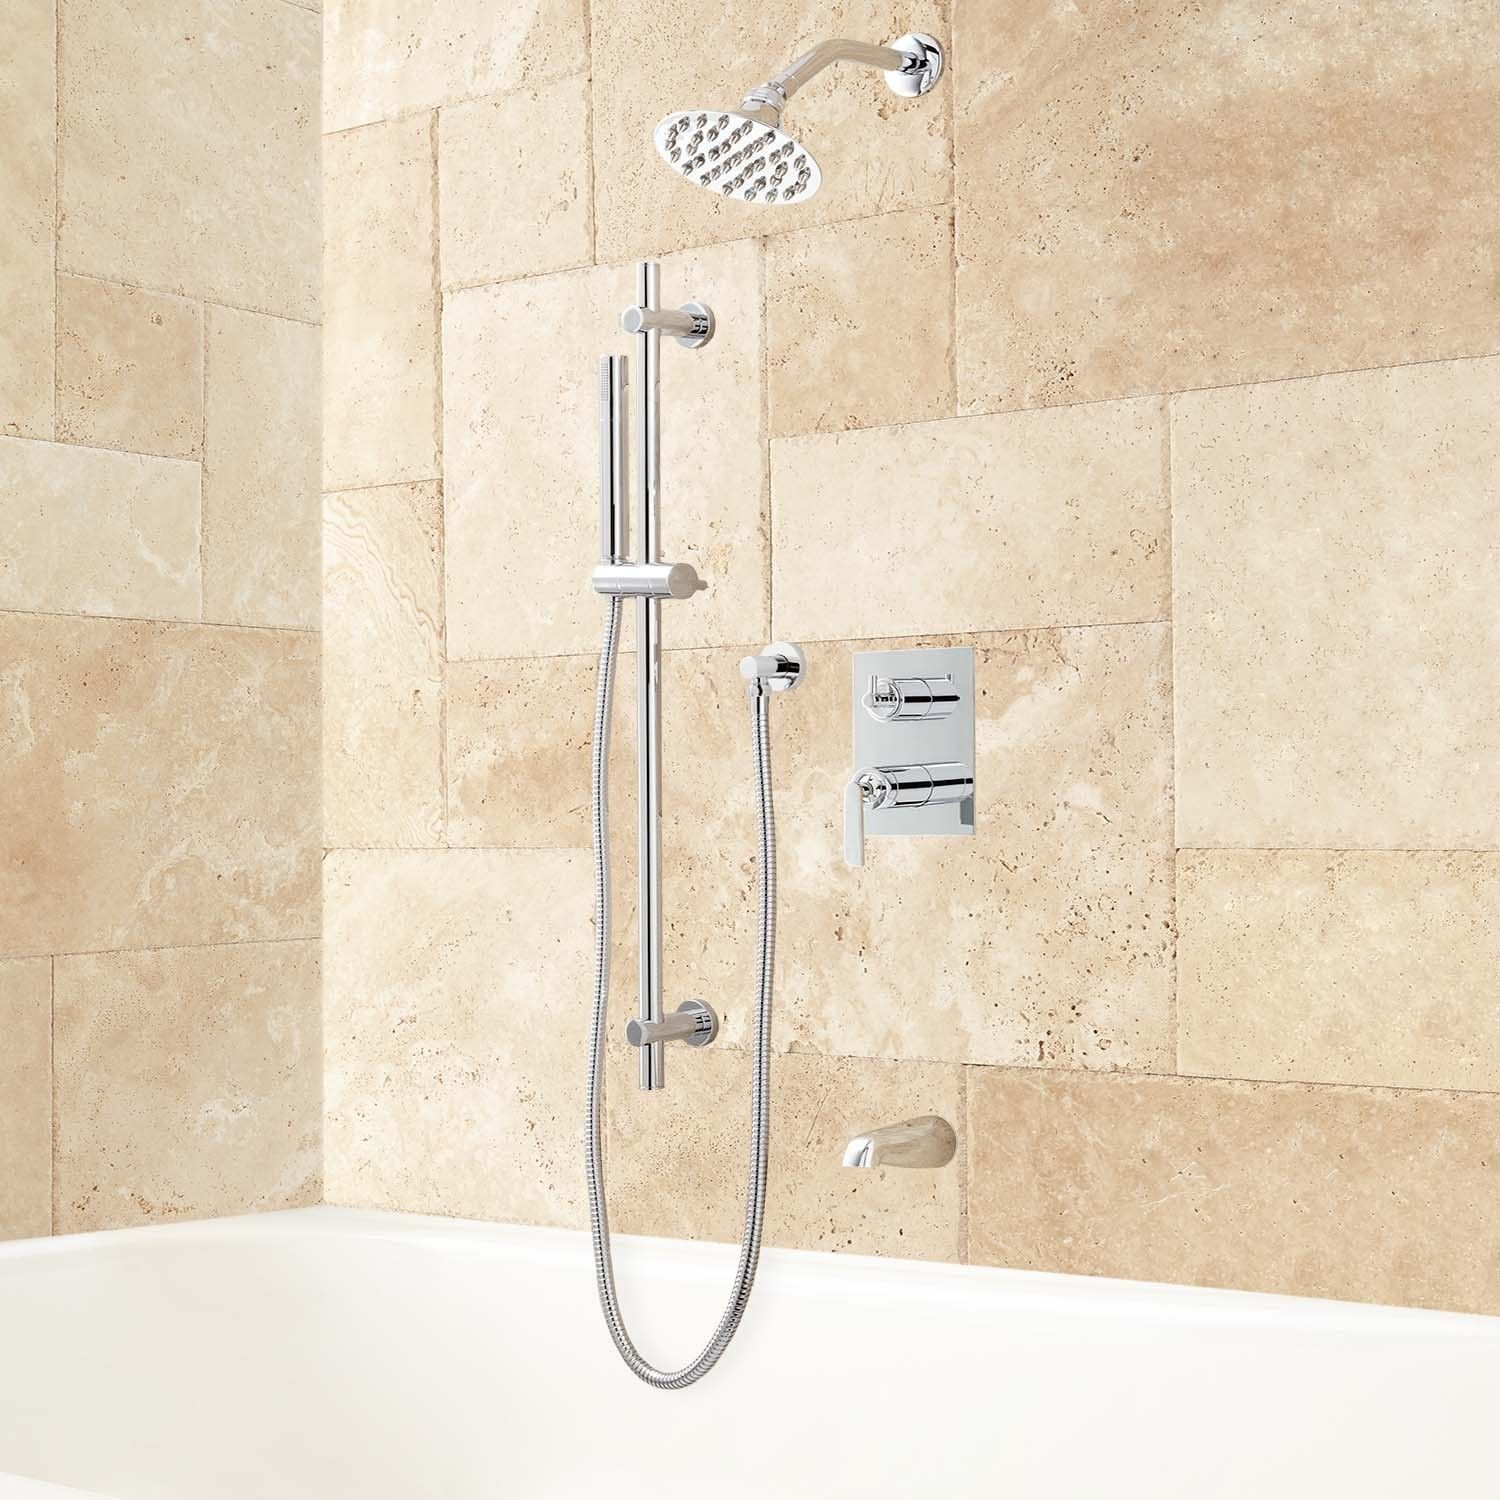 pin hand systems thermostatic exira sprays body system shower bathroom